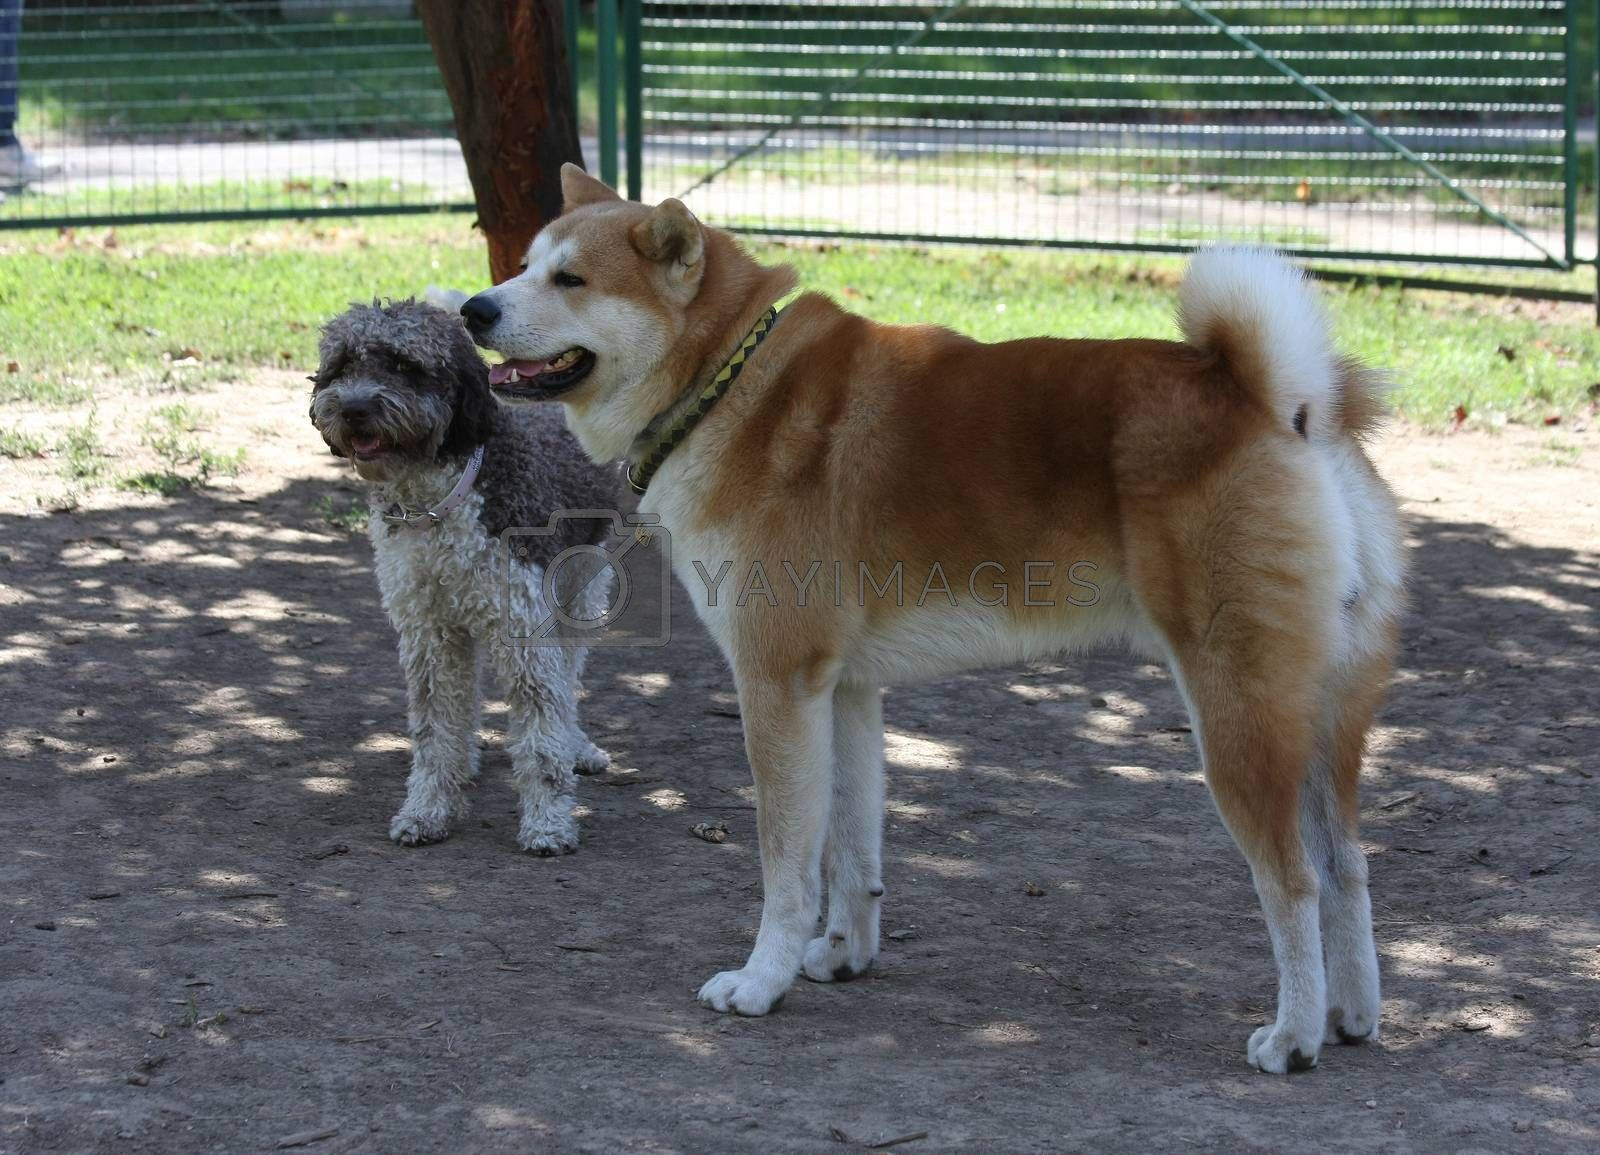 Lagotto Romagnolo and Akita Inu posing in dog park